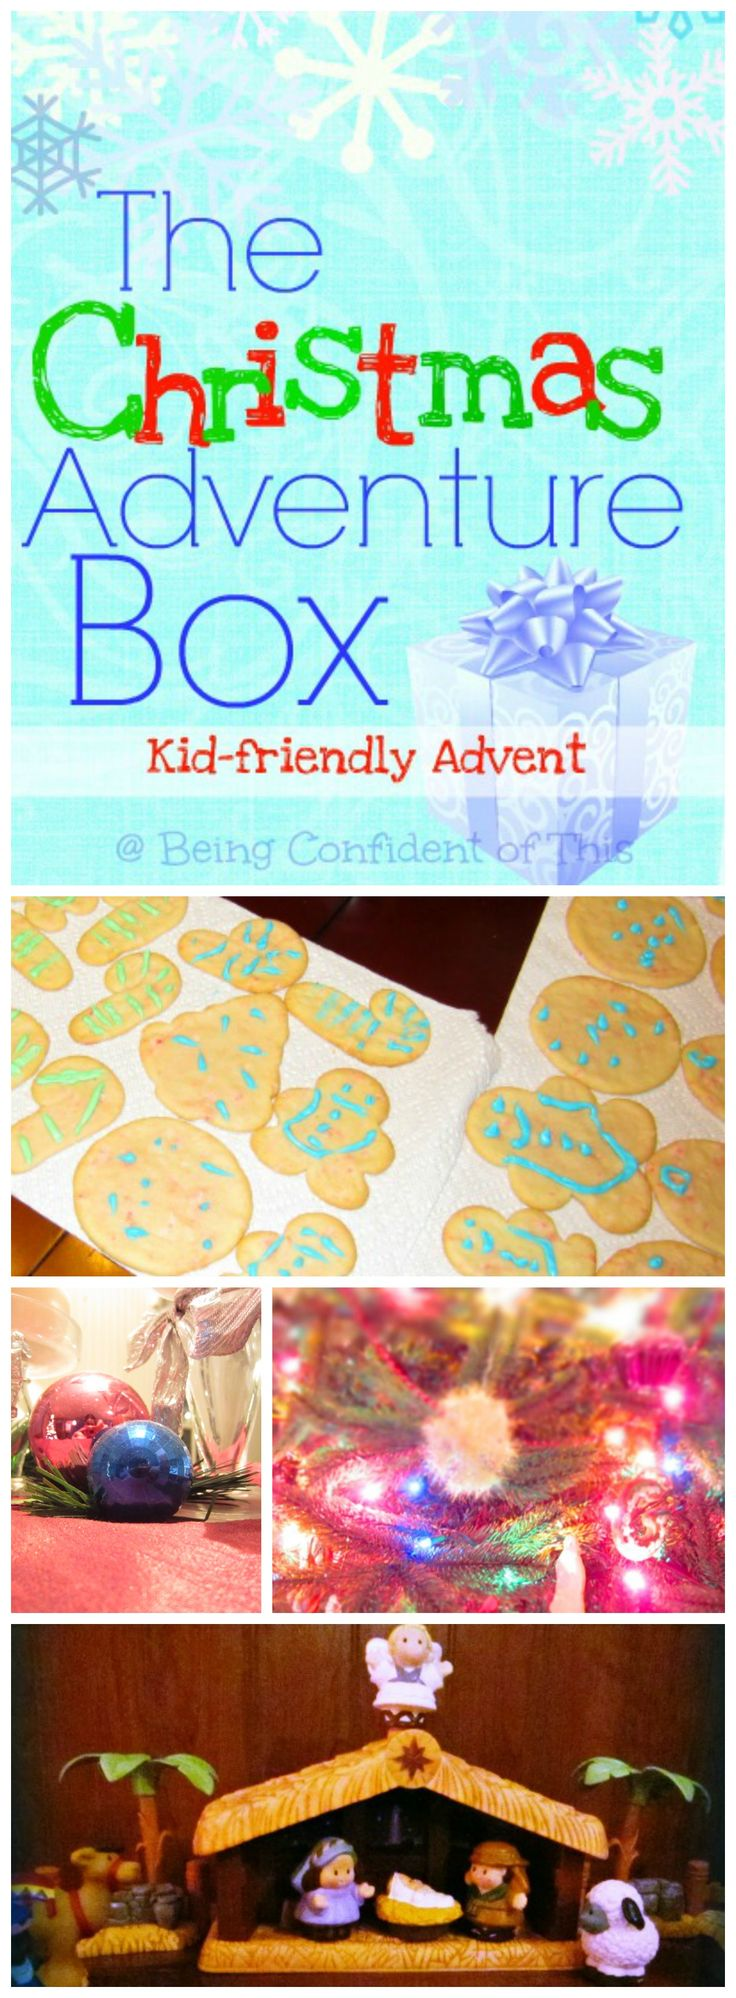 The Christmas Adventure Box collage, Nativity, Christmas, Advent activities for families, kid-friendly advent, Christmas traditions, fun Christmas activities, family fun